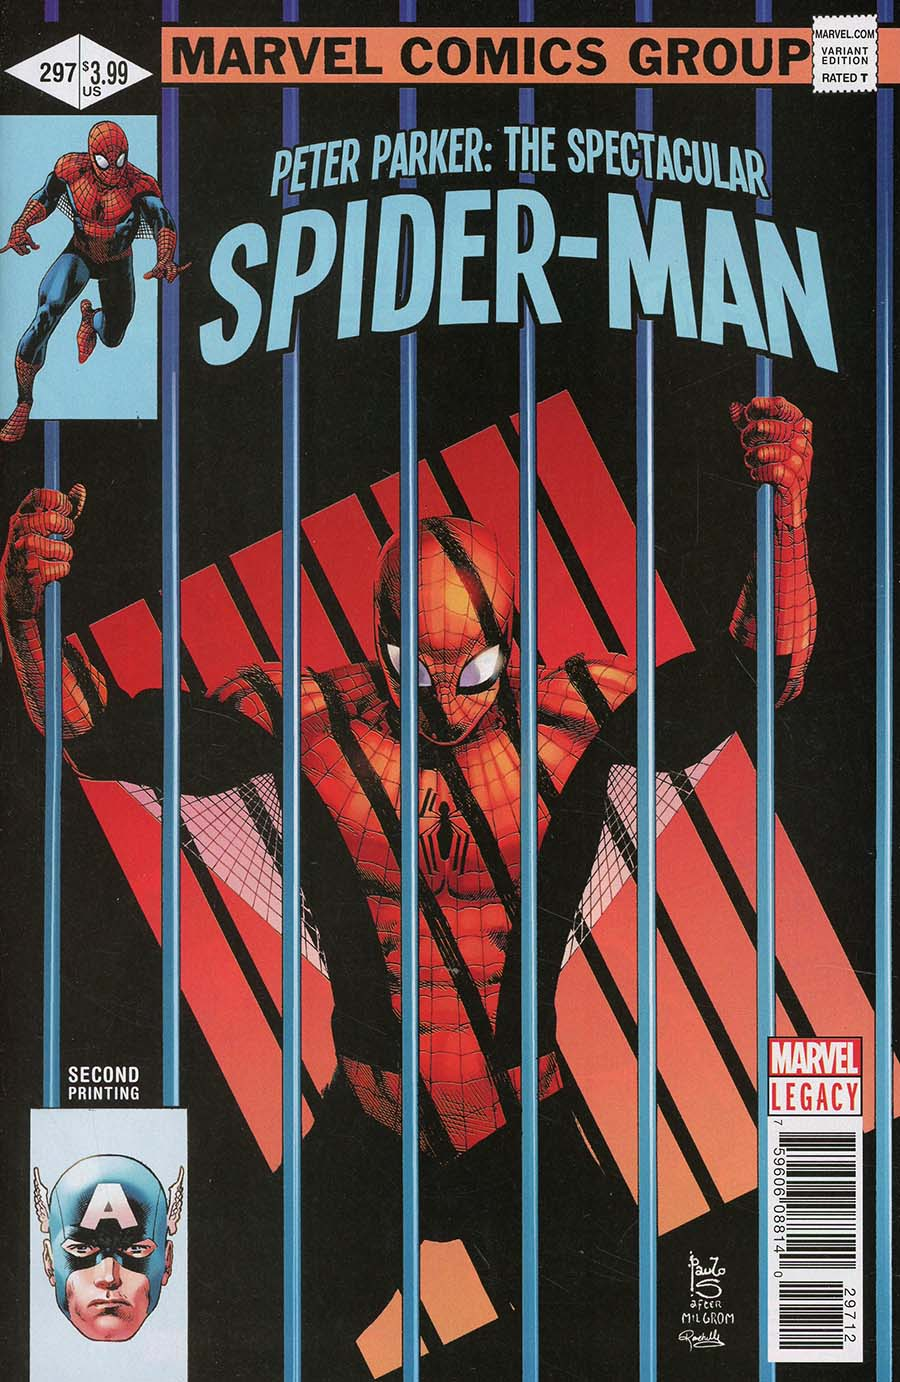 Peter Parker Spectacular Spider-Man #297 Cover E 2nd Ptg Variant Paulo Siqueira Cover (Marvel Legacy Tie-In)